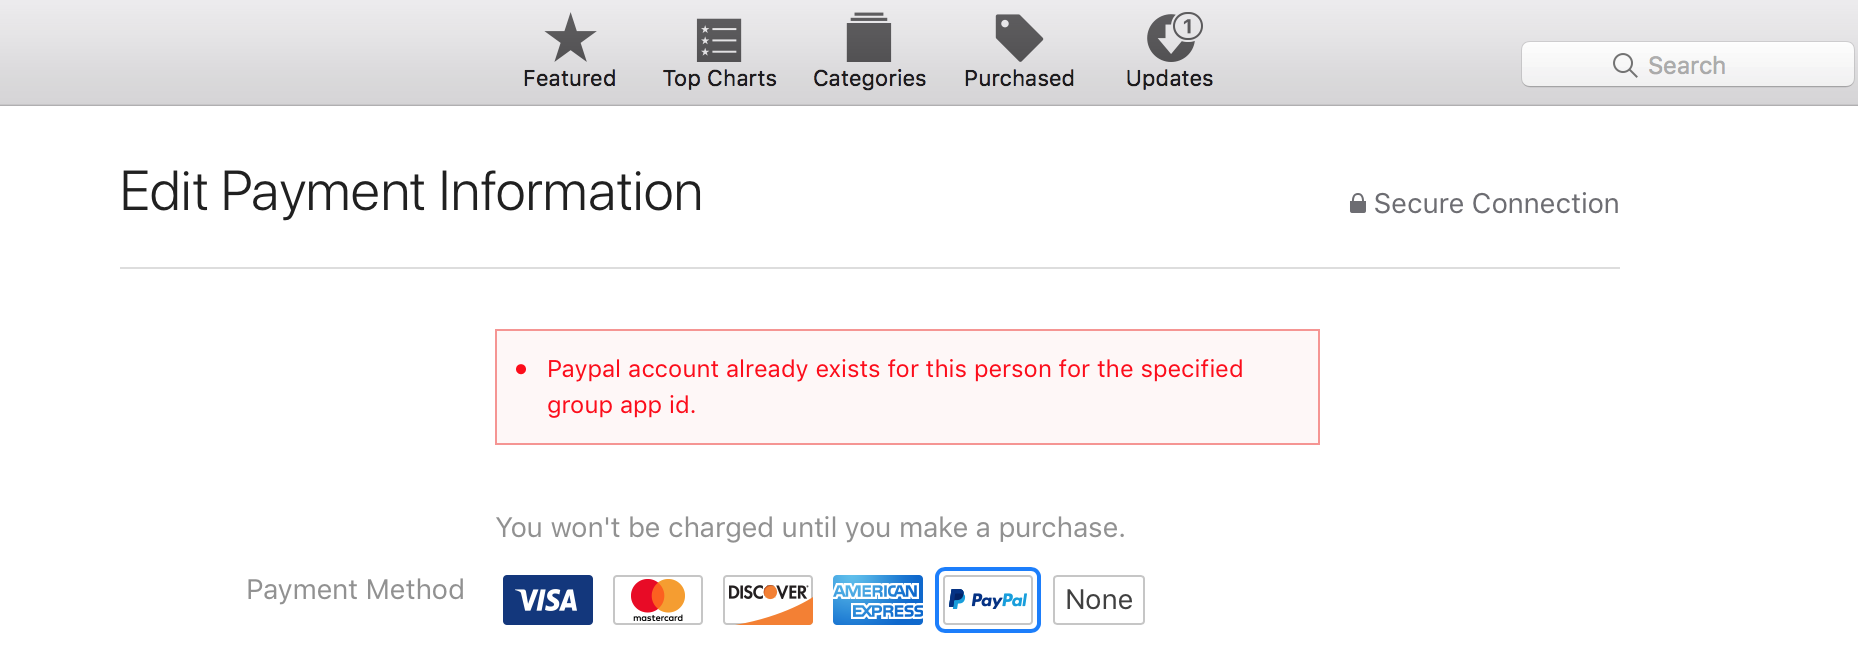 PayPal suddenly does not work on my iPad … - Apple Community